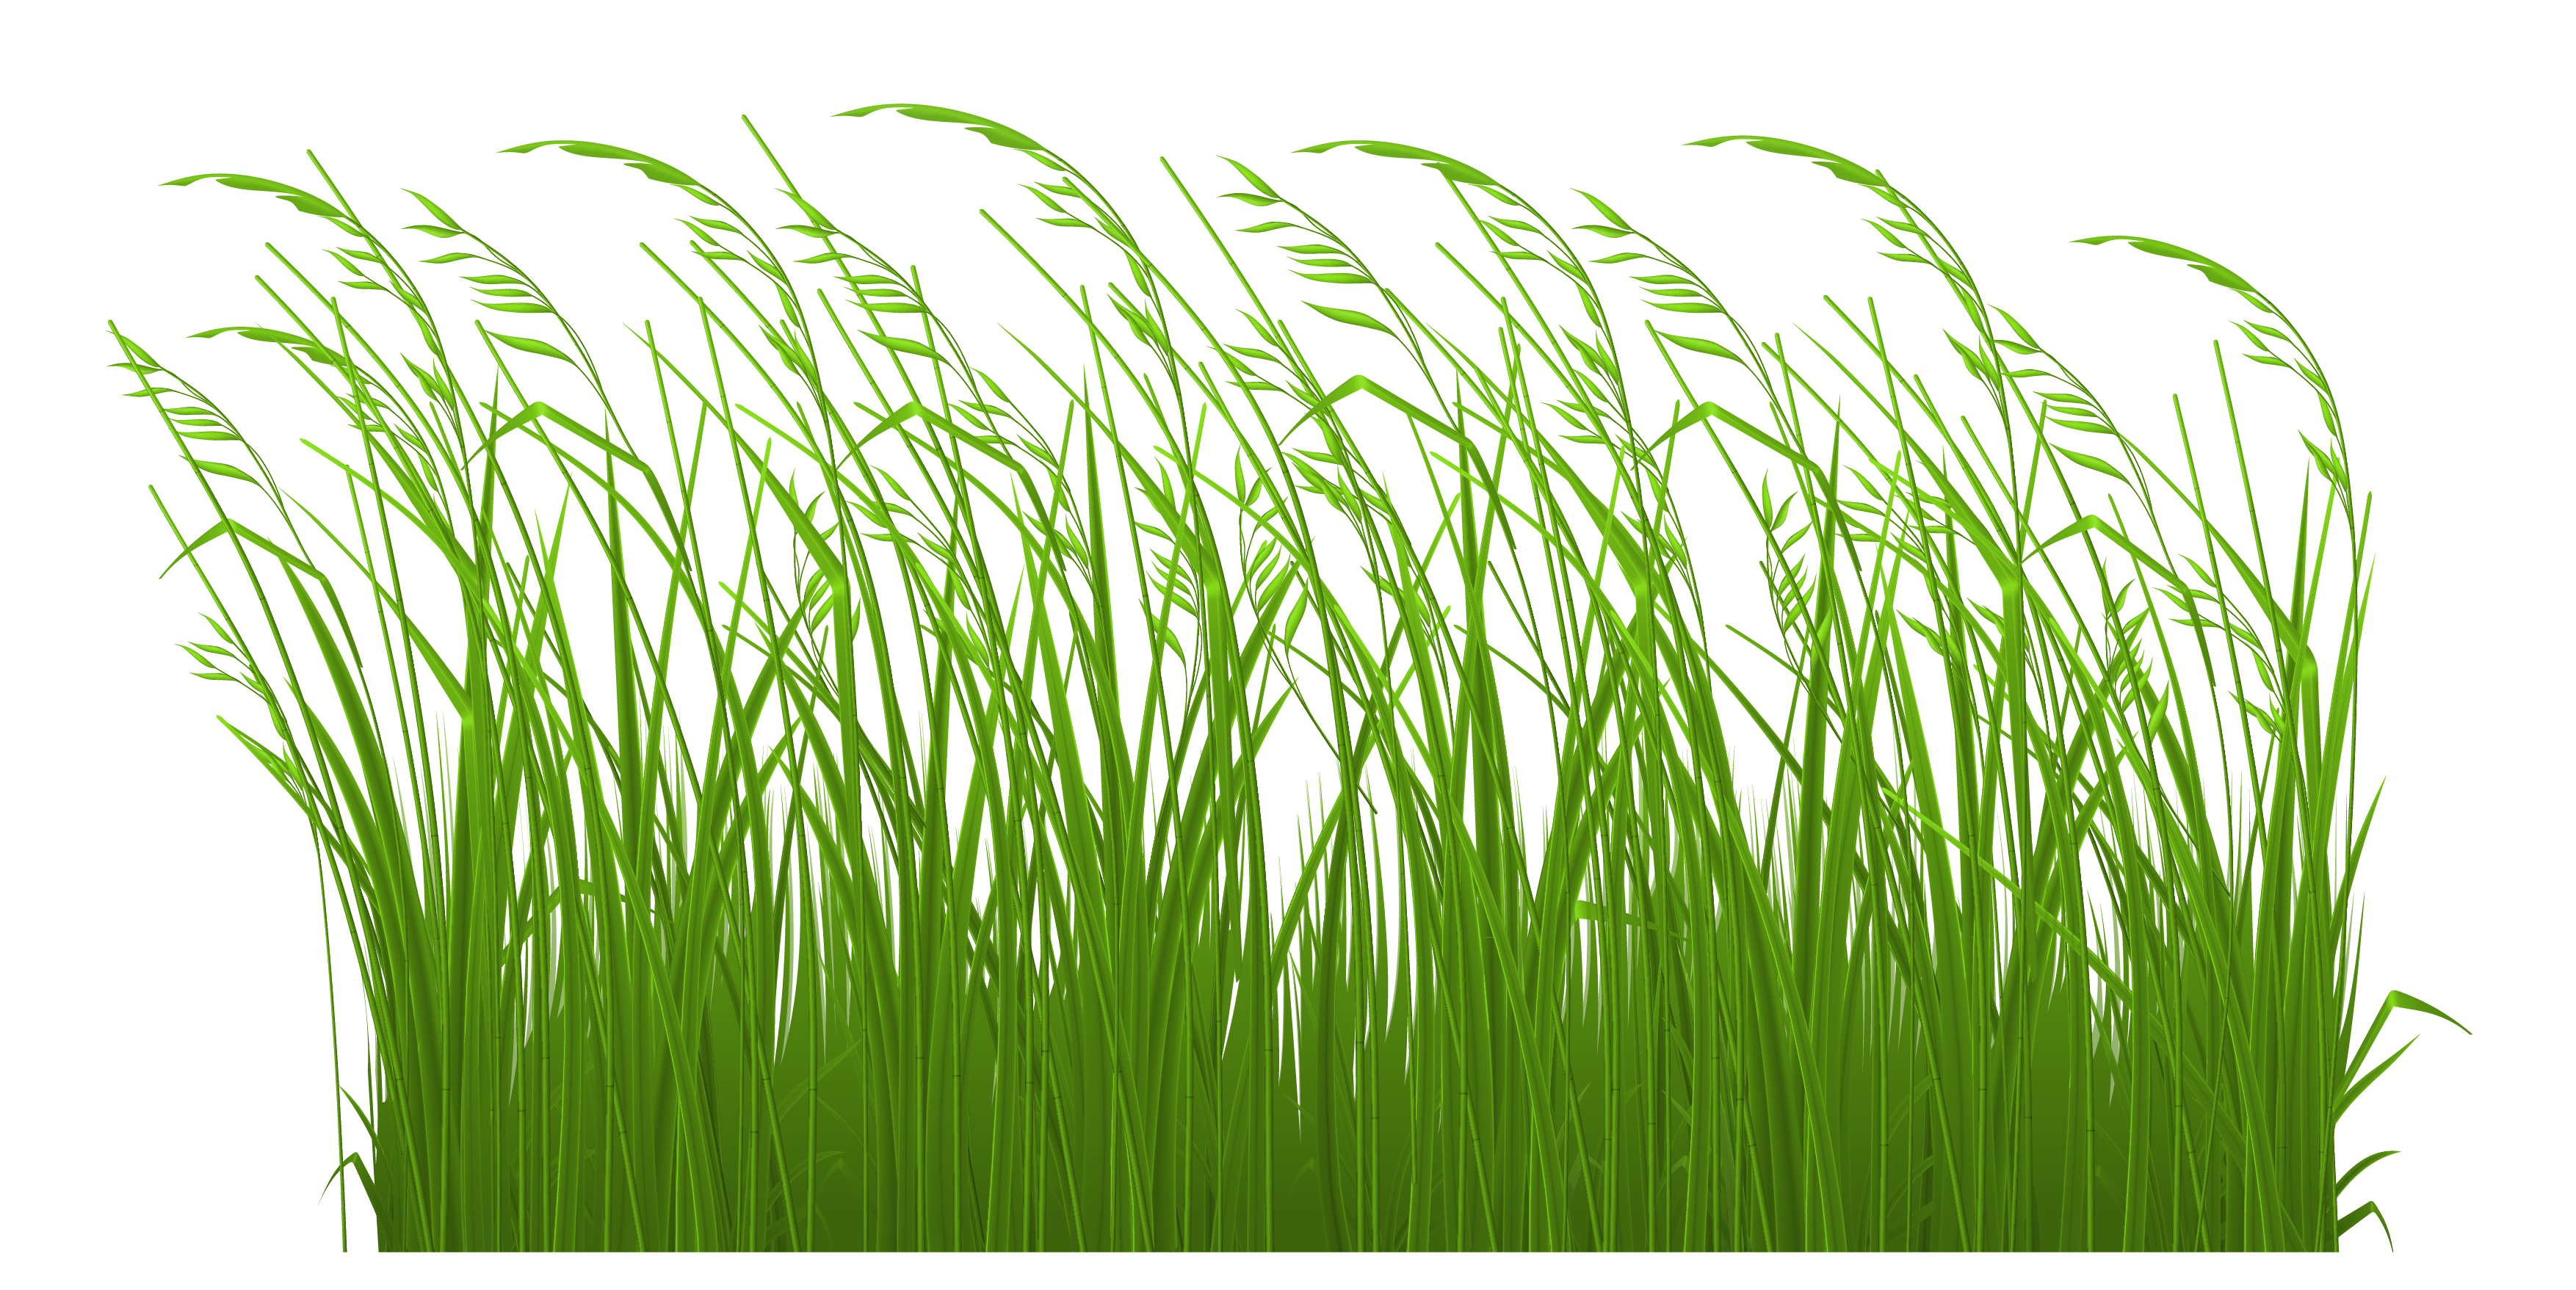 3508x1757 15 Lawn Vector Green Grass For Free Download On Mbtskoudsalg